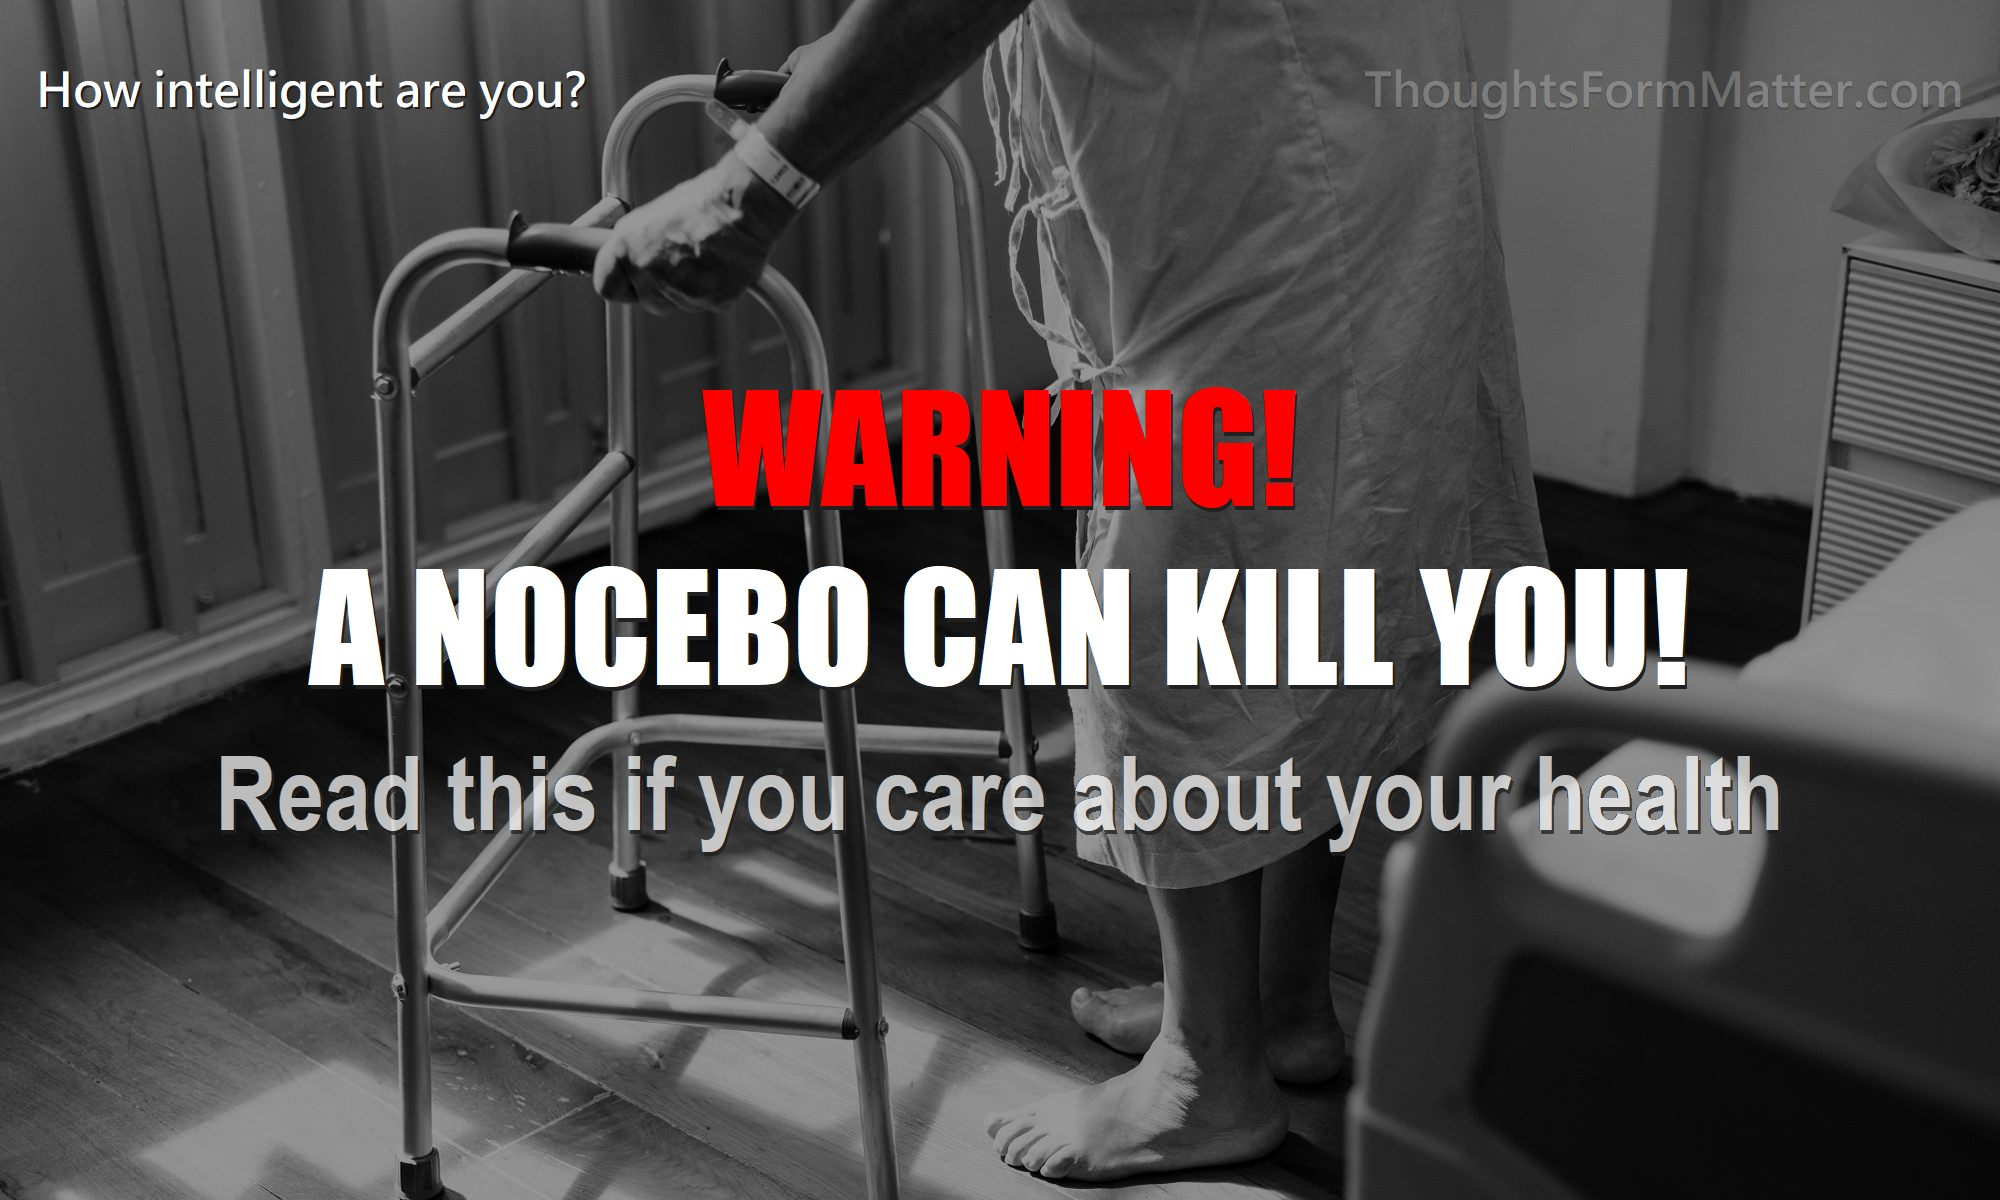 Man with walker shows how a negative thought nocebo can affect health create disease